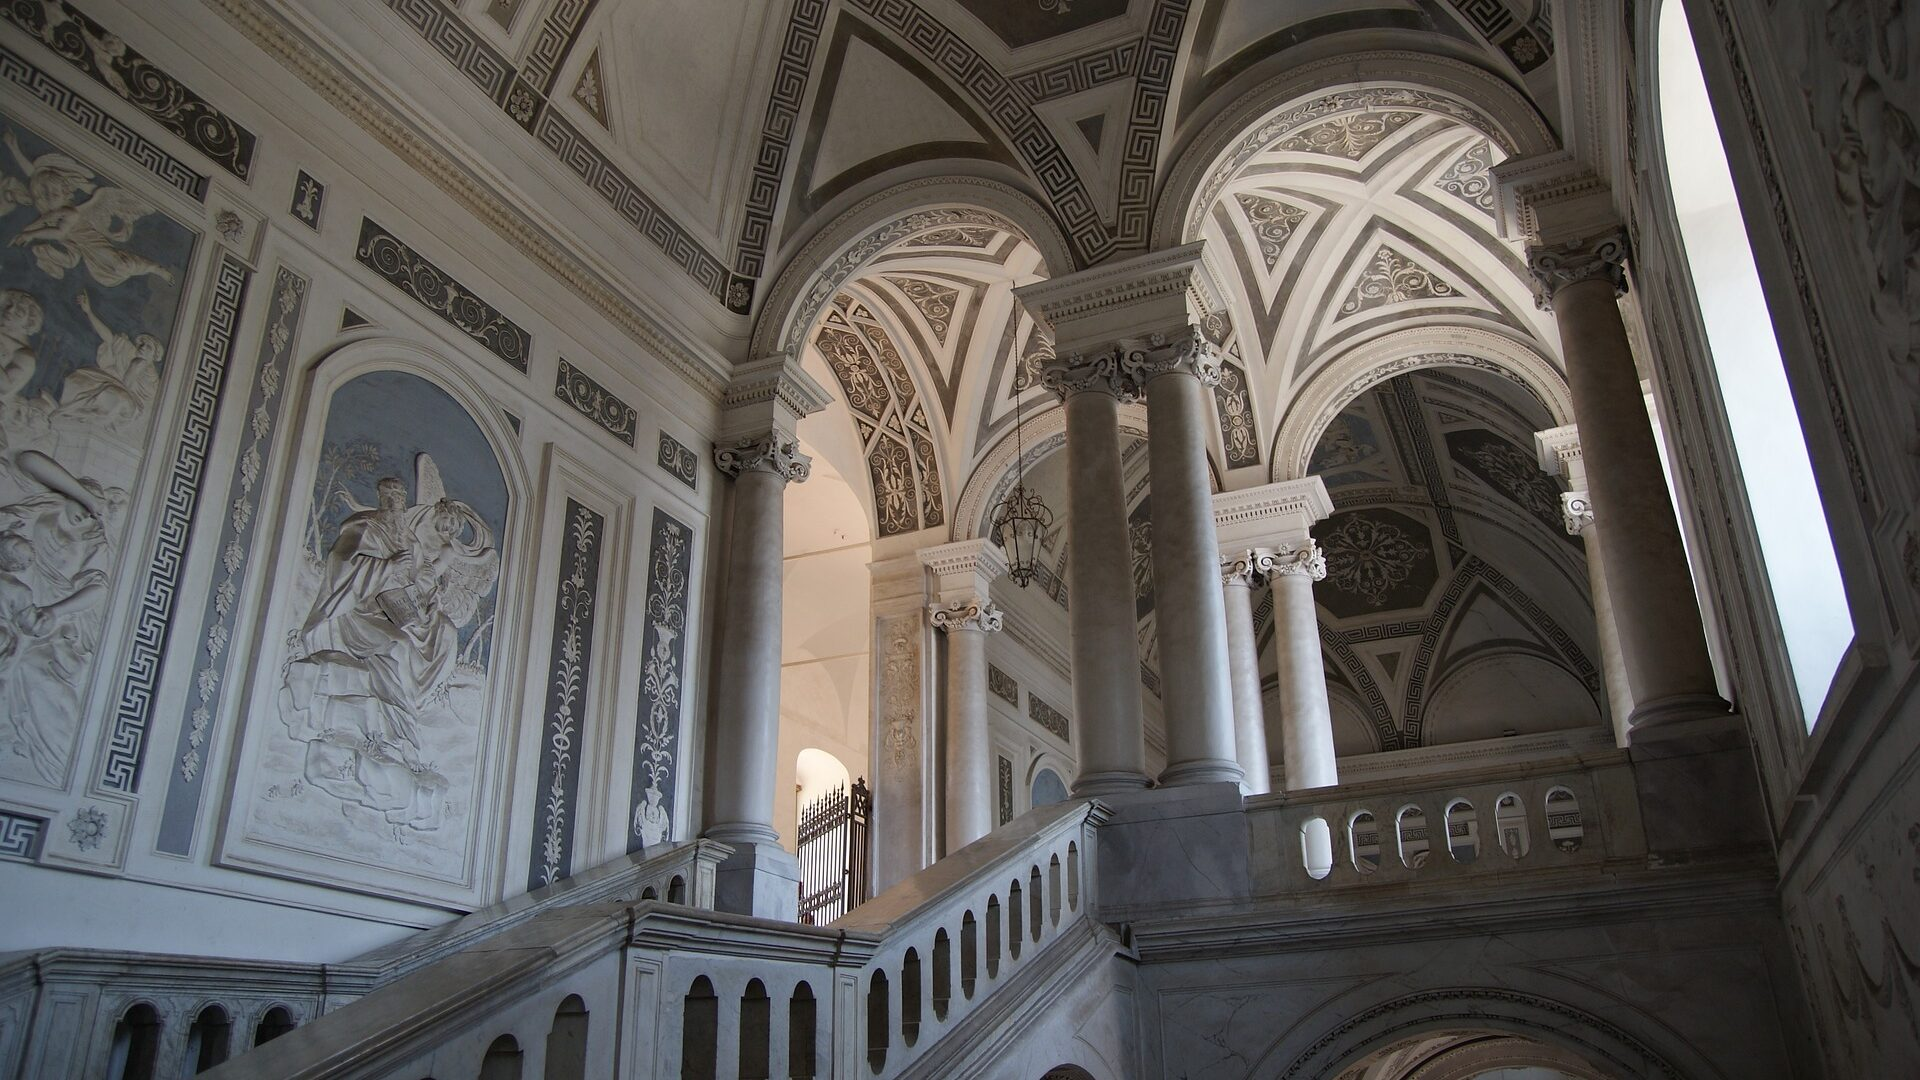 Inside Catania building